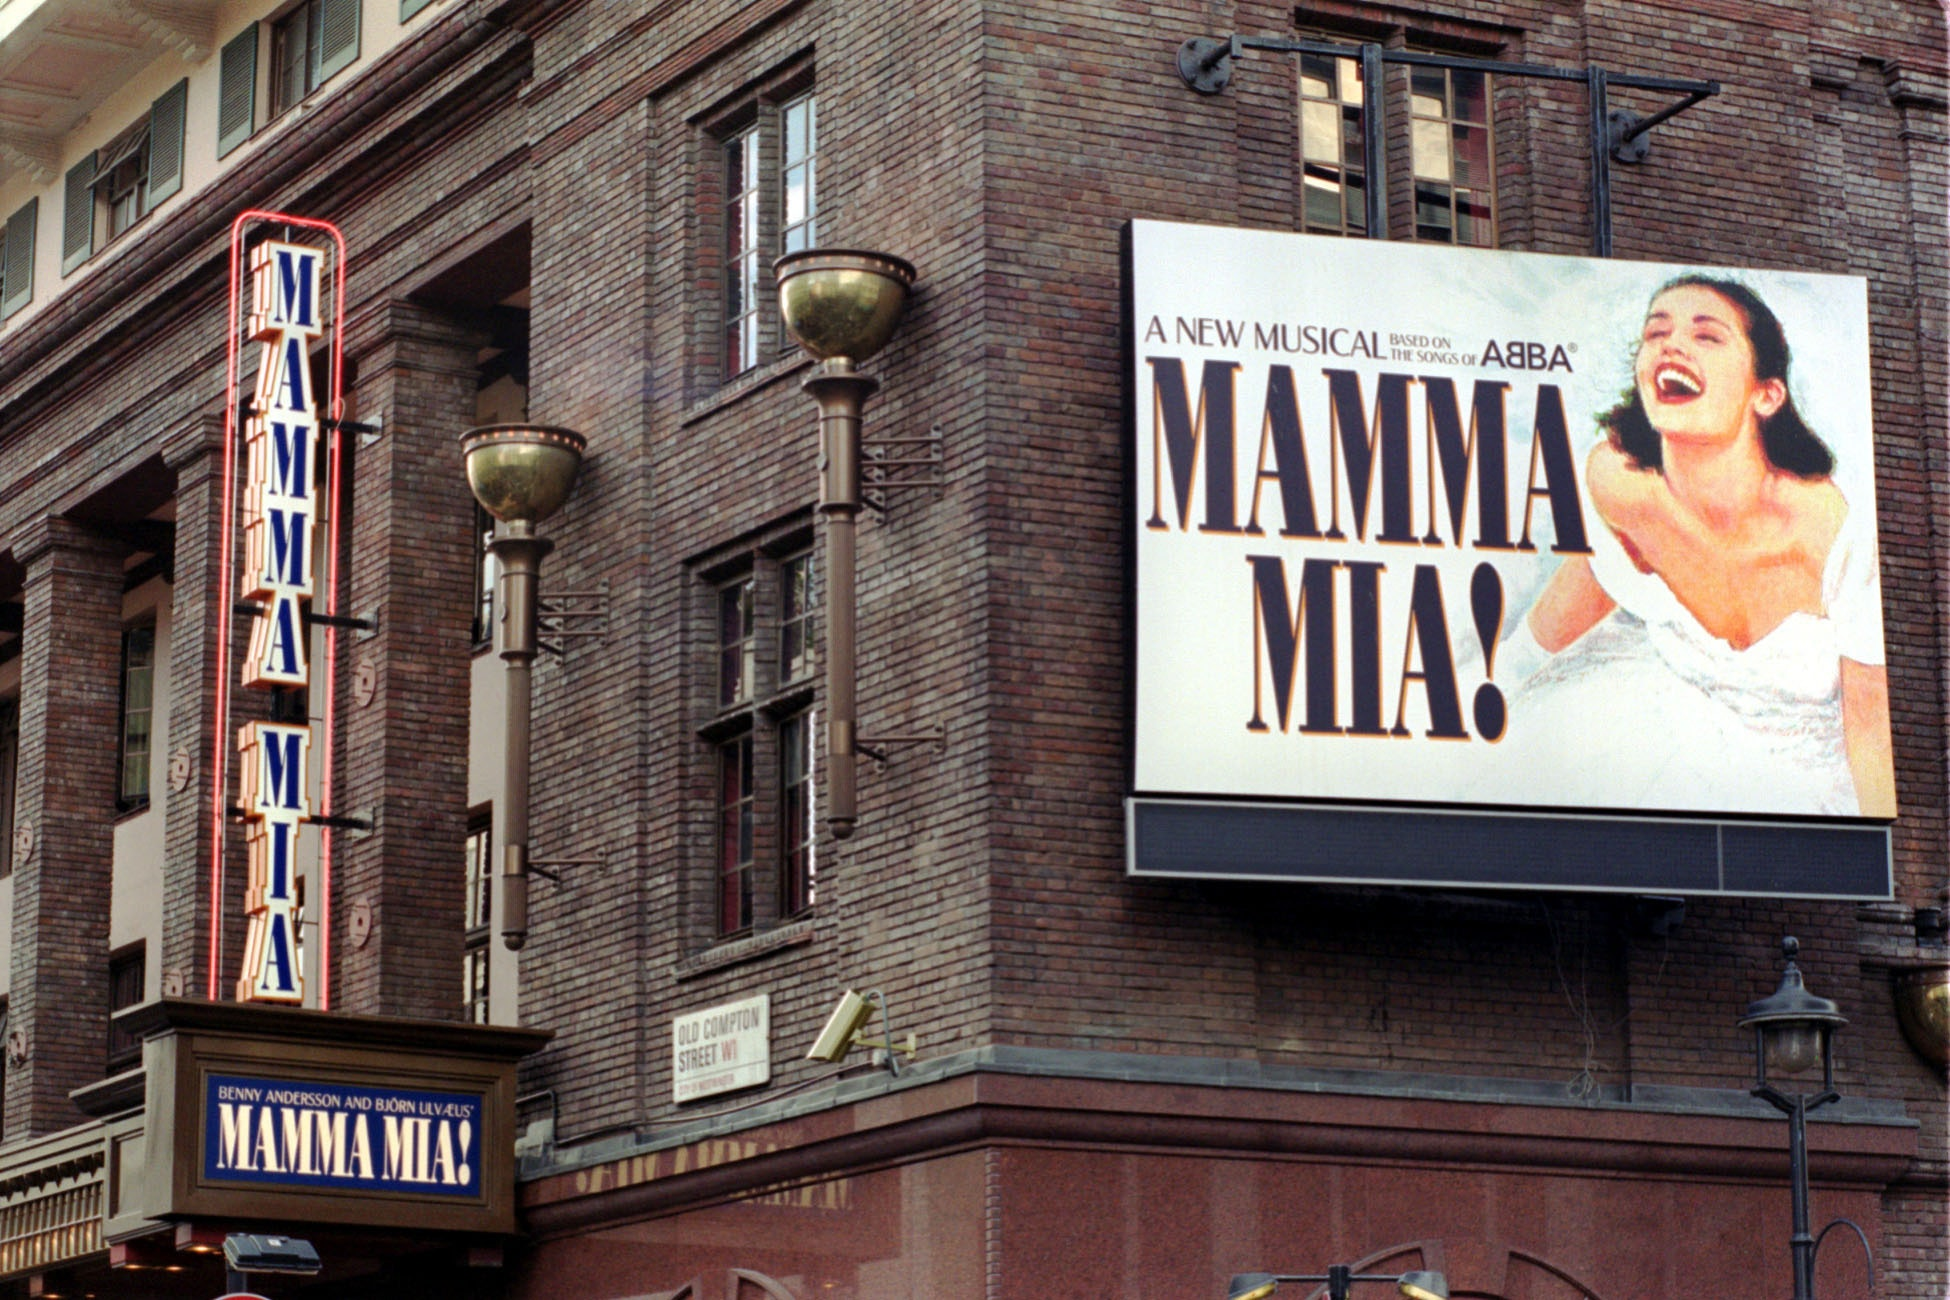 Musical theatre alliance founded to boost funding and diversity in West End